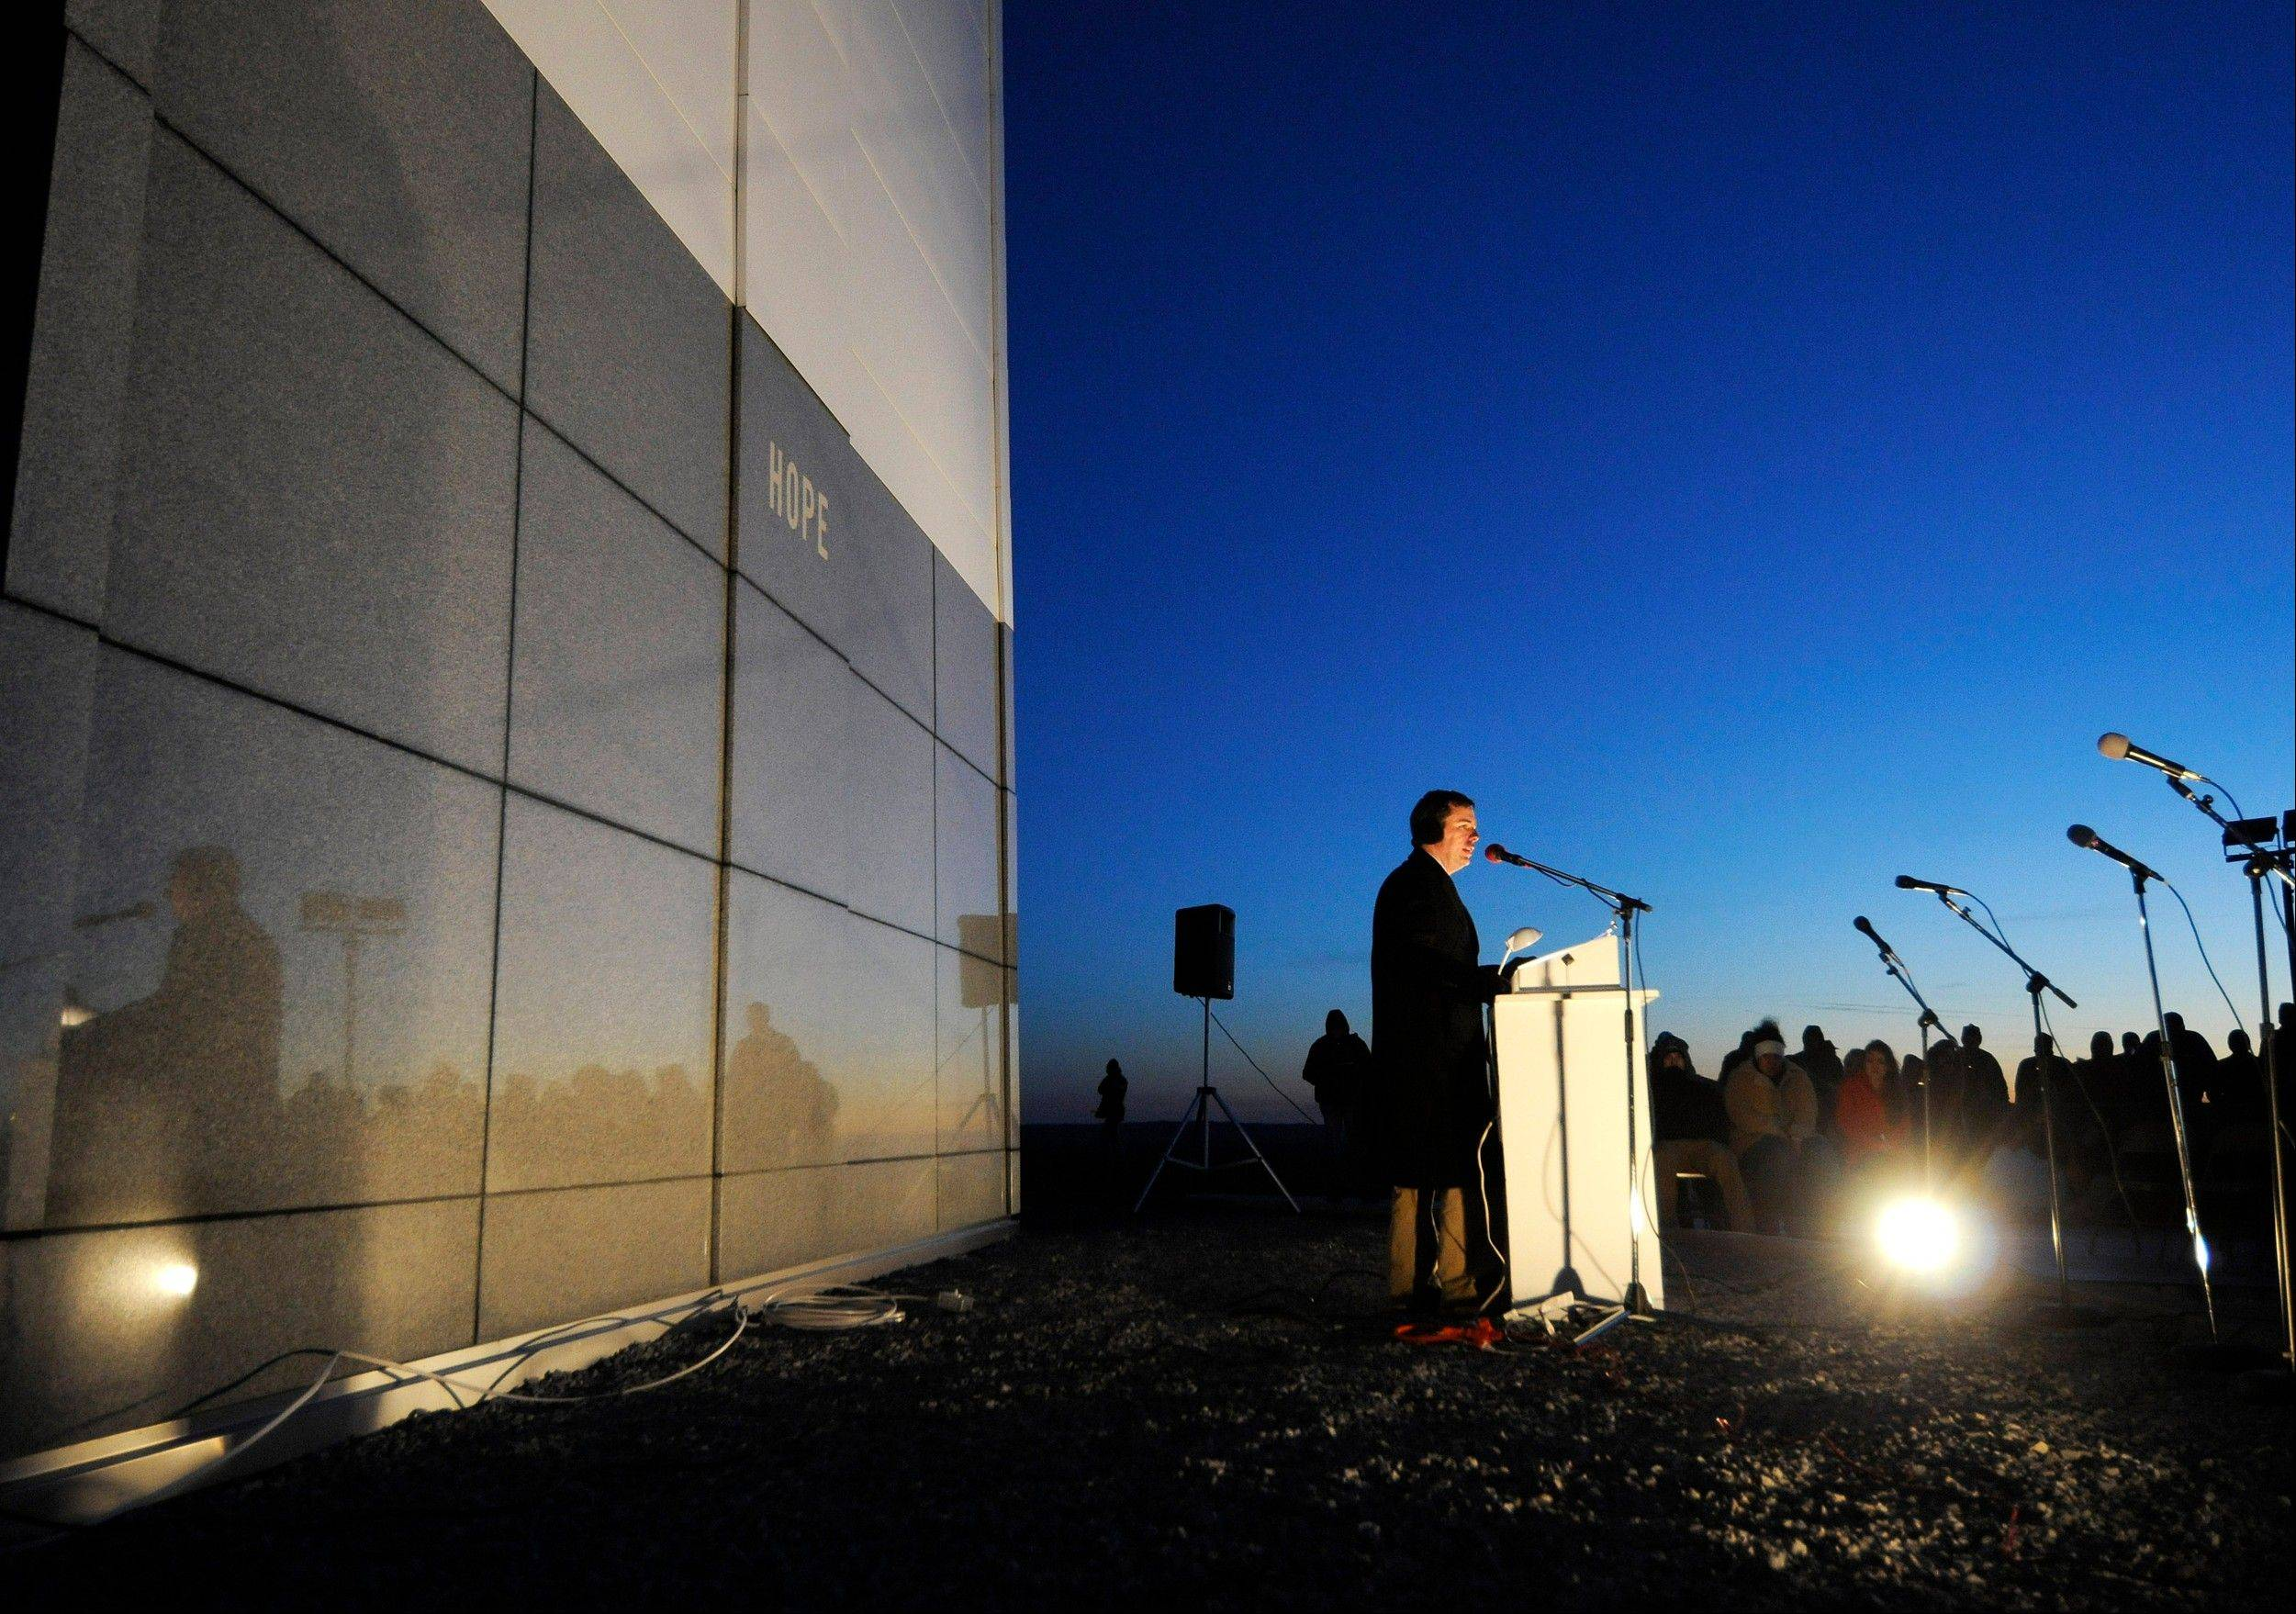 D.W. Presley, president of the Bald Knob Cross of Peace, addresses the crowd before four LED light panels are turned on to illuminate the cross Saturday in downstate Alto Pass. The lighting ceremony marked the completion of a renovation project that began in 2009.